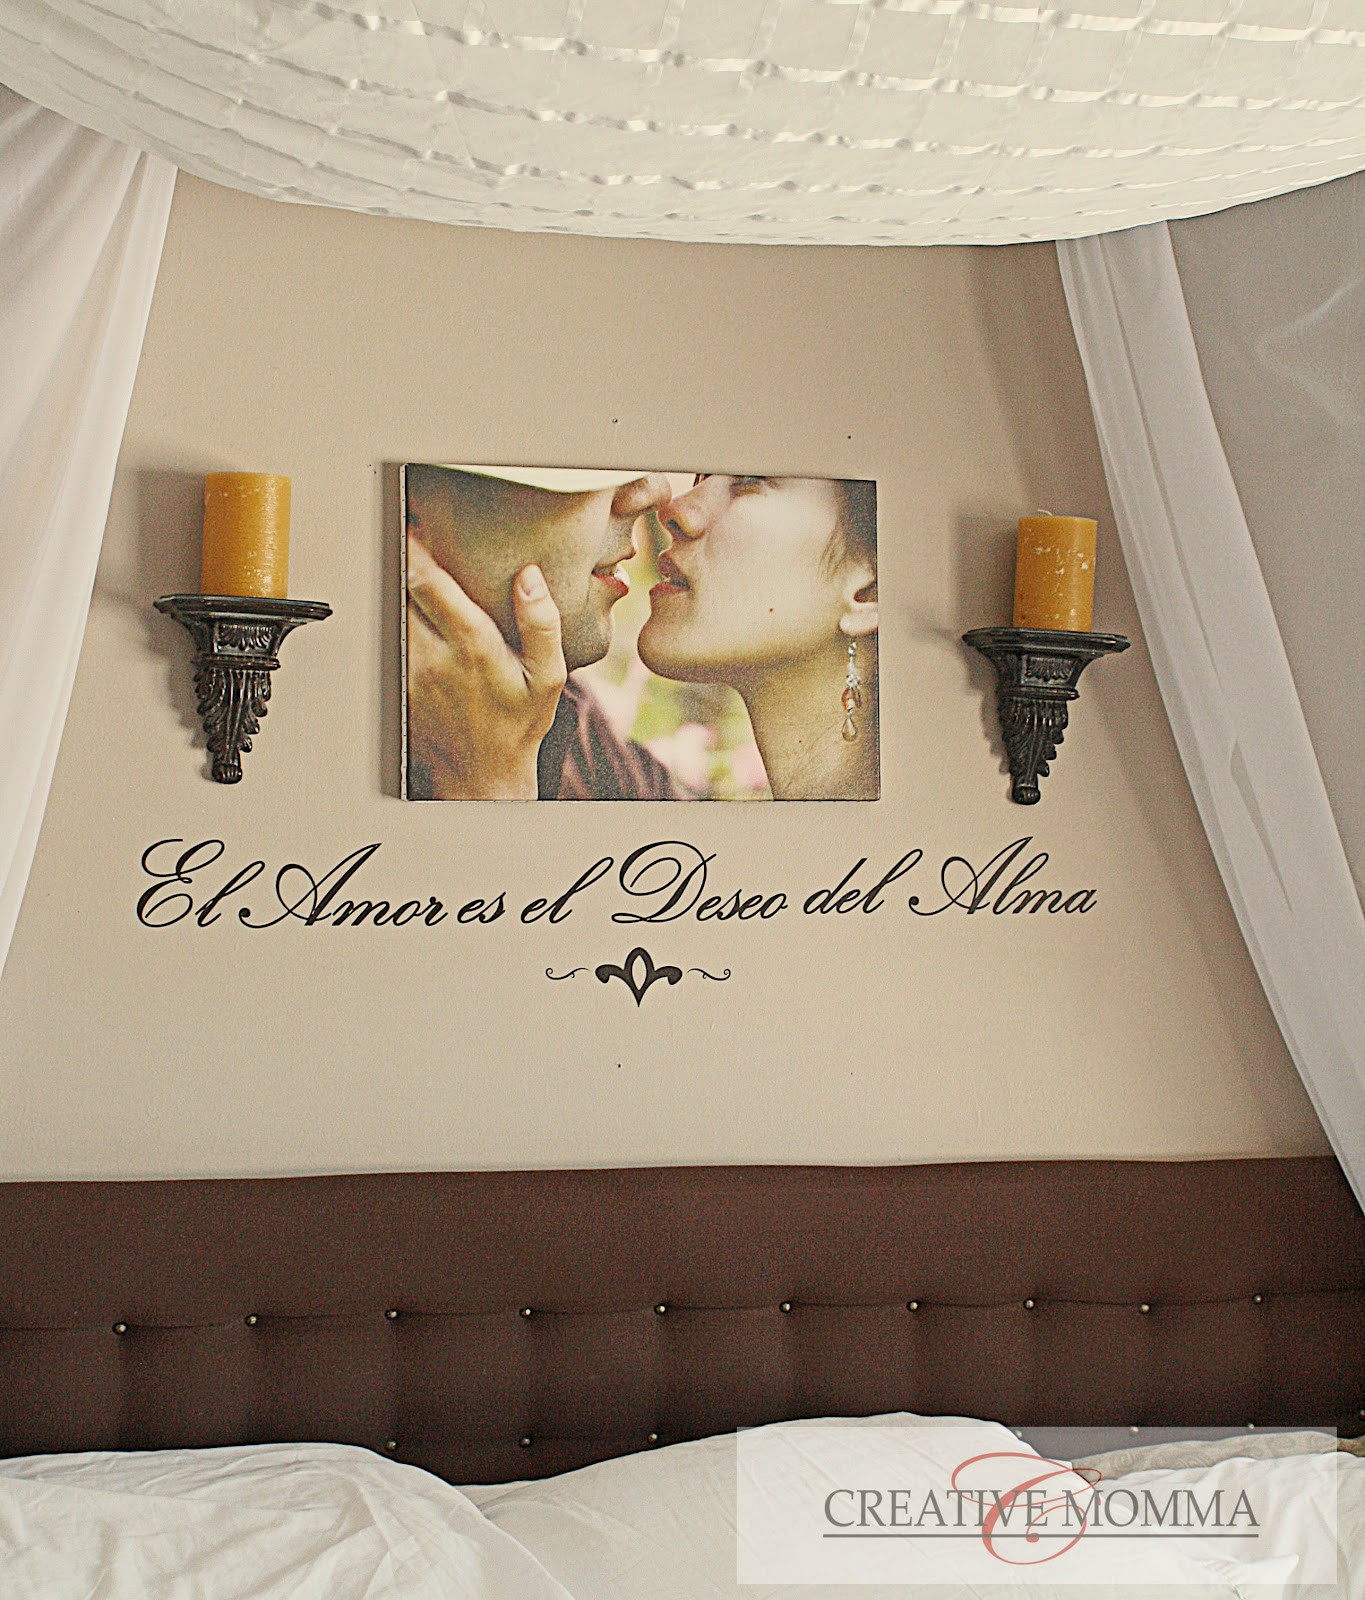 Best ideas about Bedroom Wall Decor . Save or Pin Creative Mommas Purple Bedroom Wall Now.